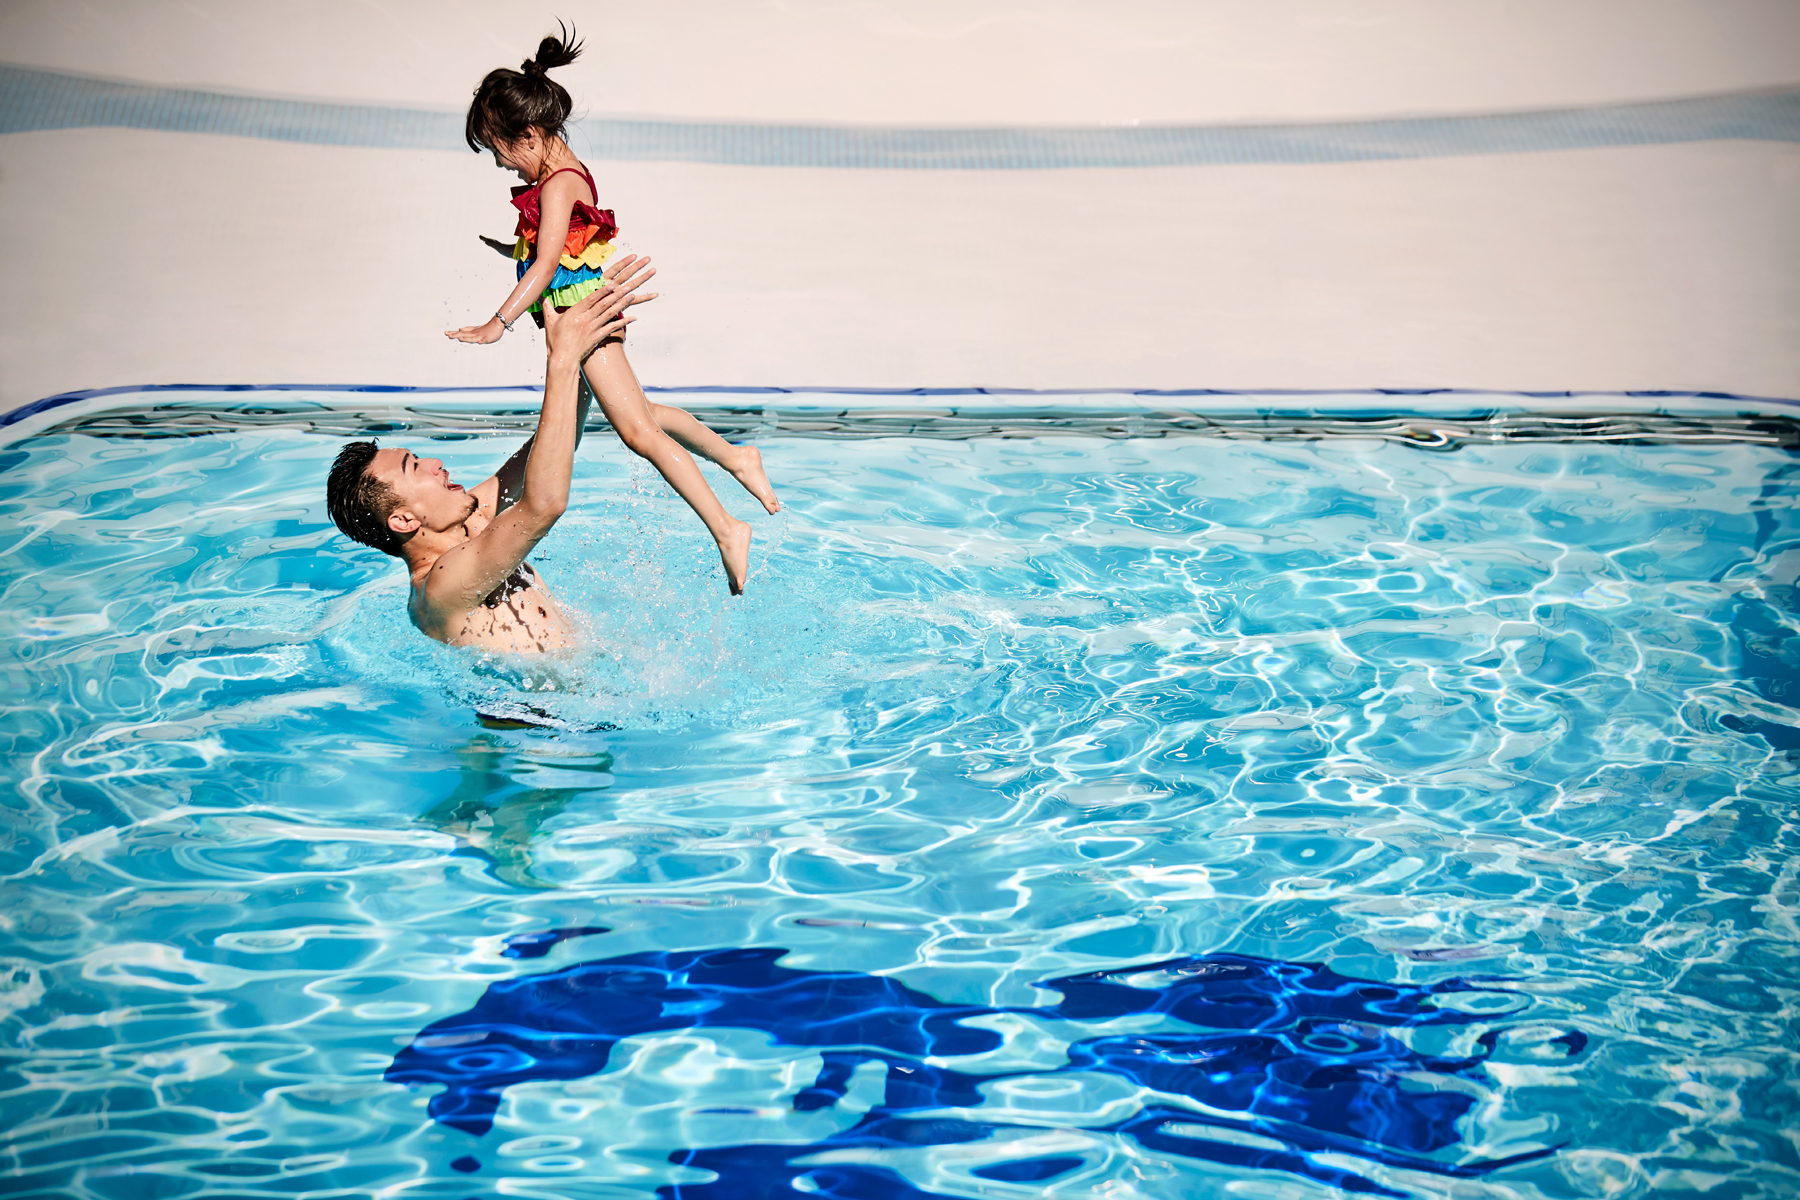 Father and daughter in the pool on a Princess Cruise ship (source: Princess Cruises)